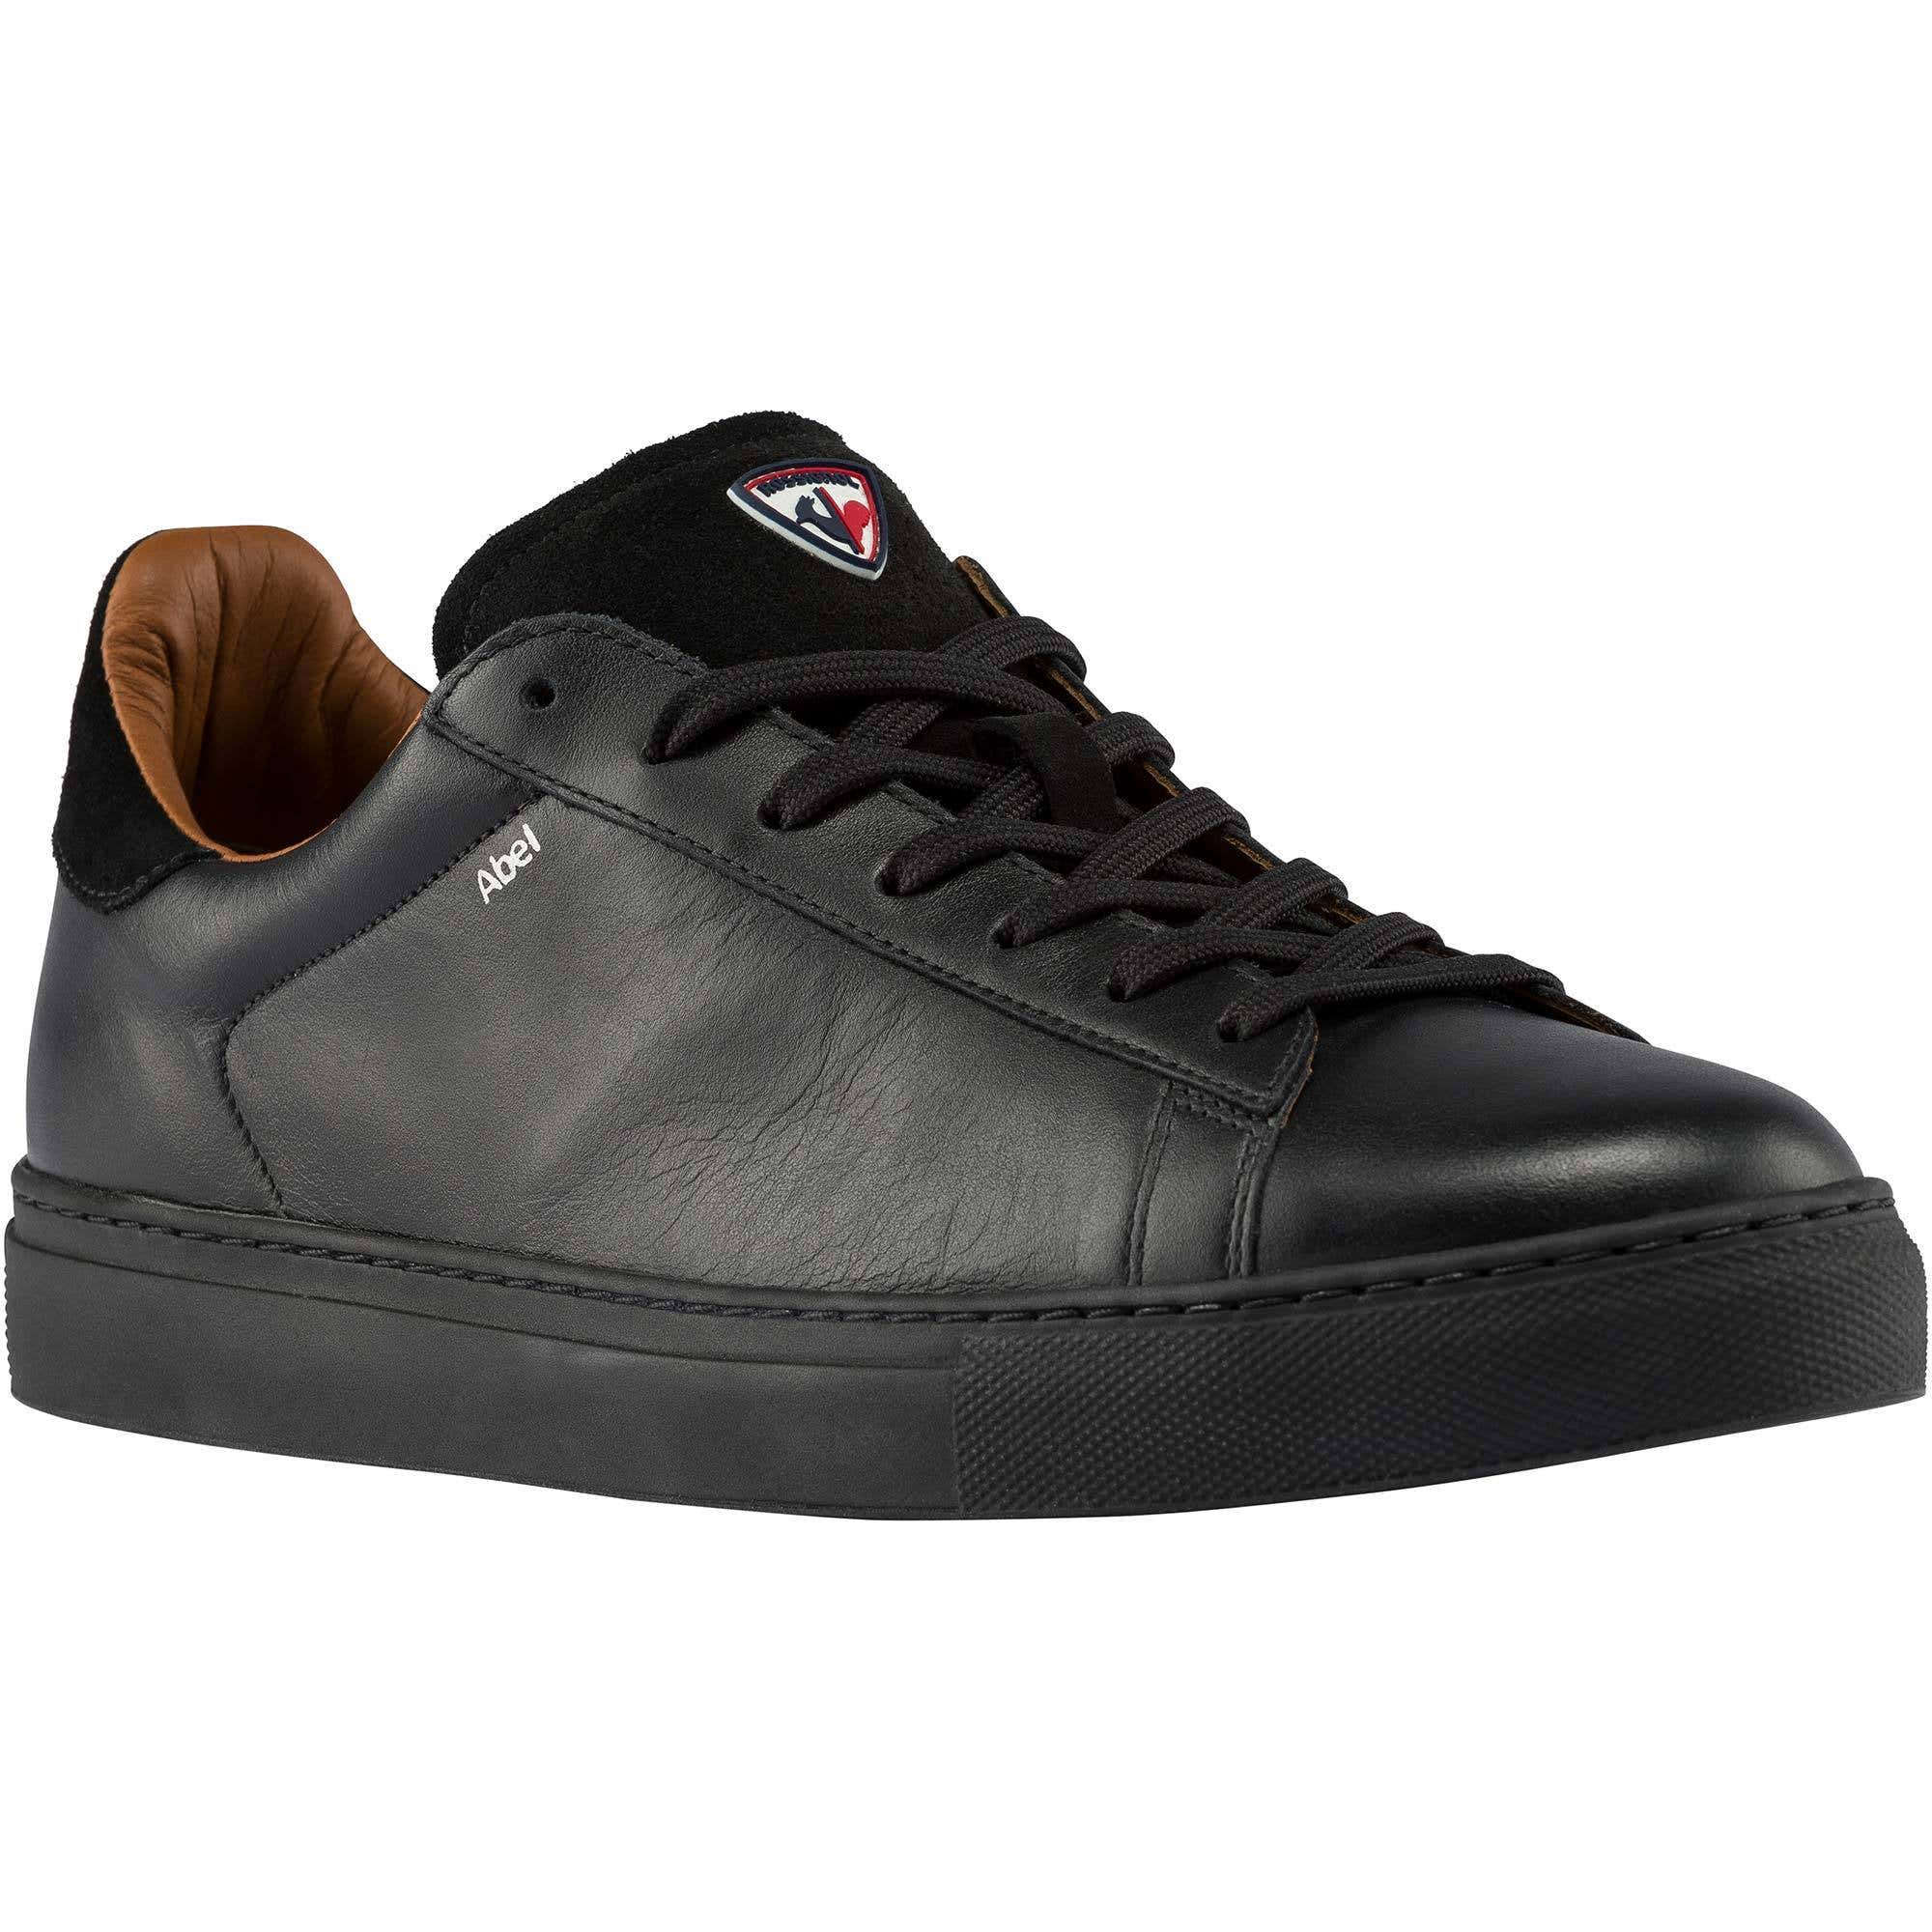 Image of Men's Abel 13 Leather Sneakers